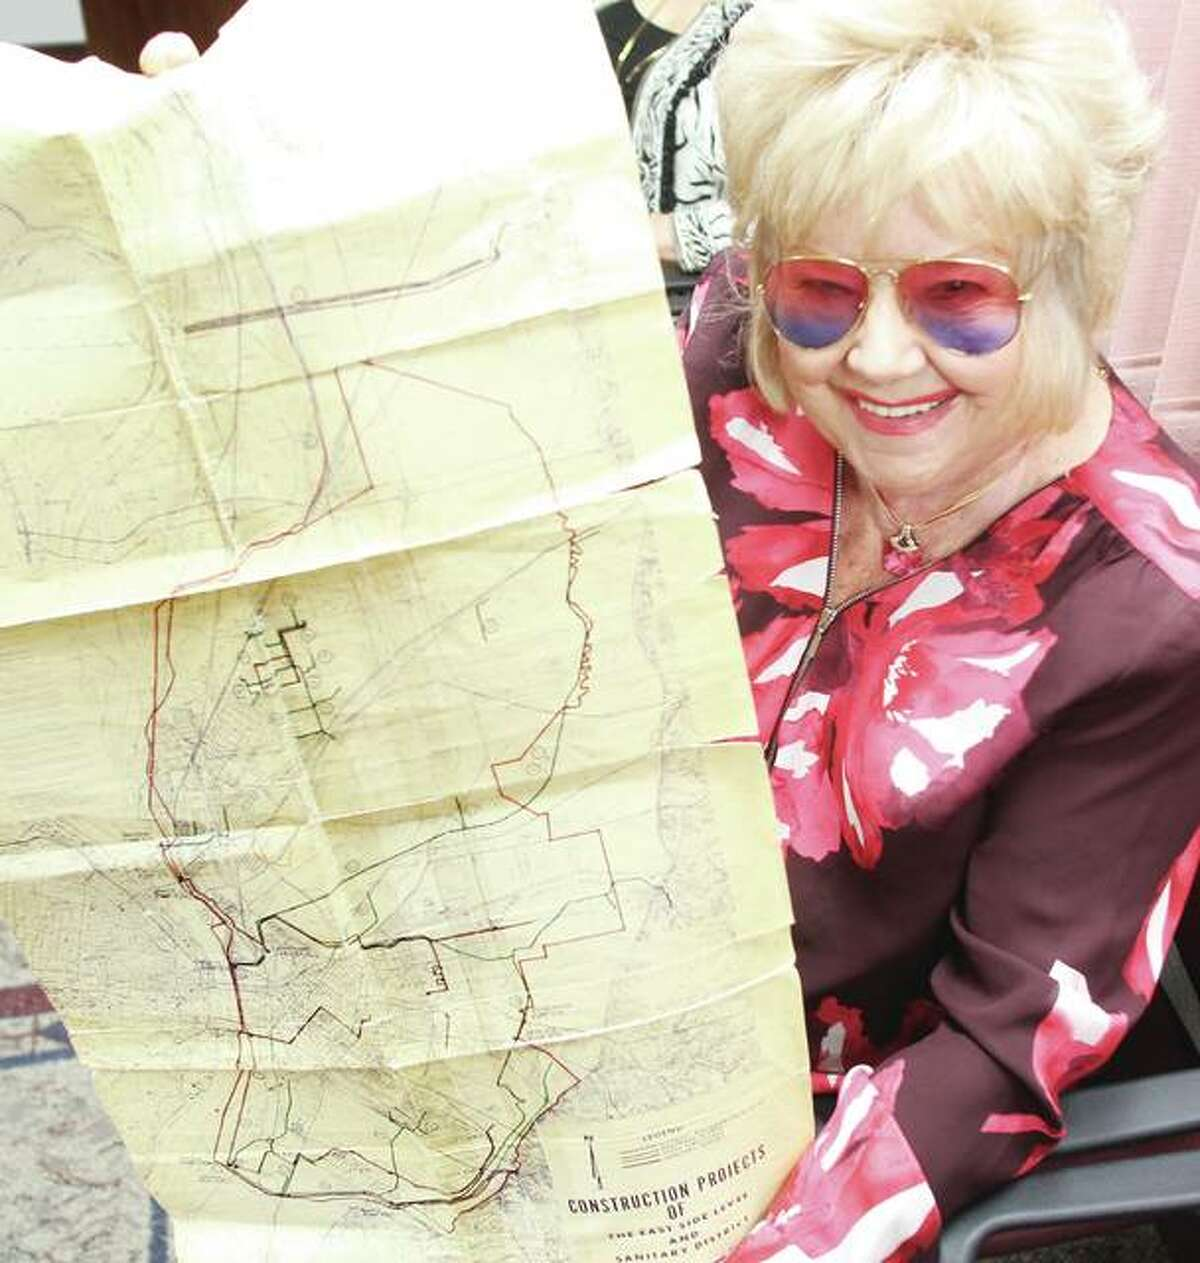 Madison County Board Member Helen Hawkins, D-Granite City, holds an old project map for the East Side Levee and Sanitary District. Hawkins was one of three new appointees to the Metro East Sanitary District board at Wednesday's County Board meeting. Hawkins has been fighting flooding issues since moving to the area in 1964, and played a part in the creation of the MESD, which replaced the East Side Levee District in the early 1970s.